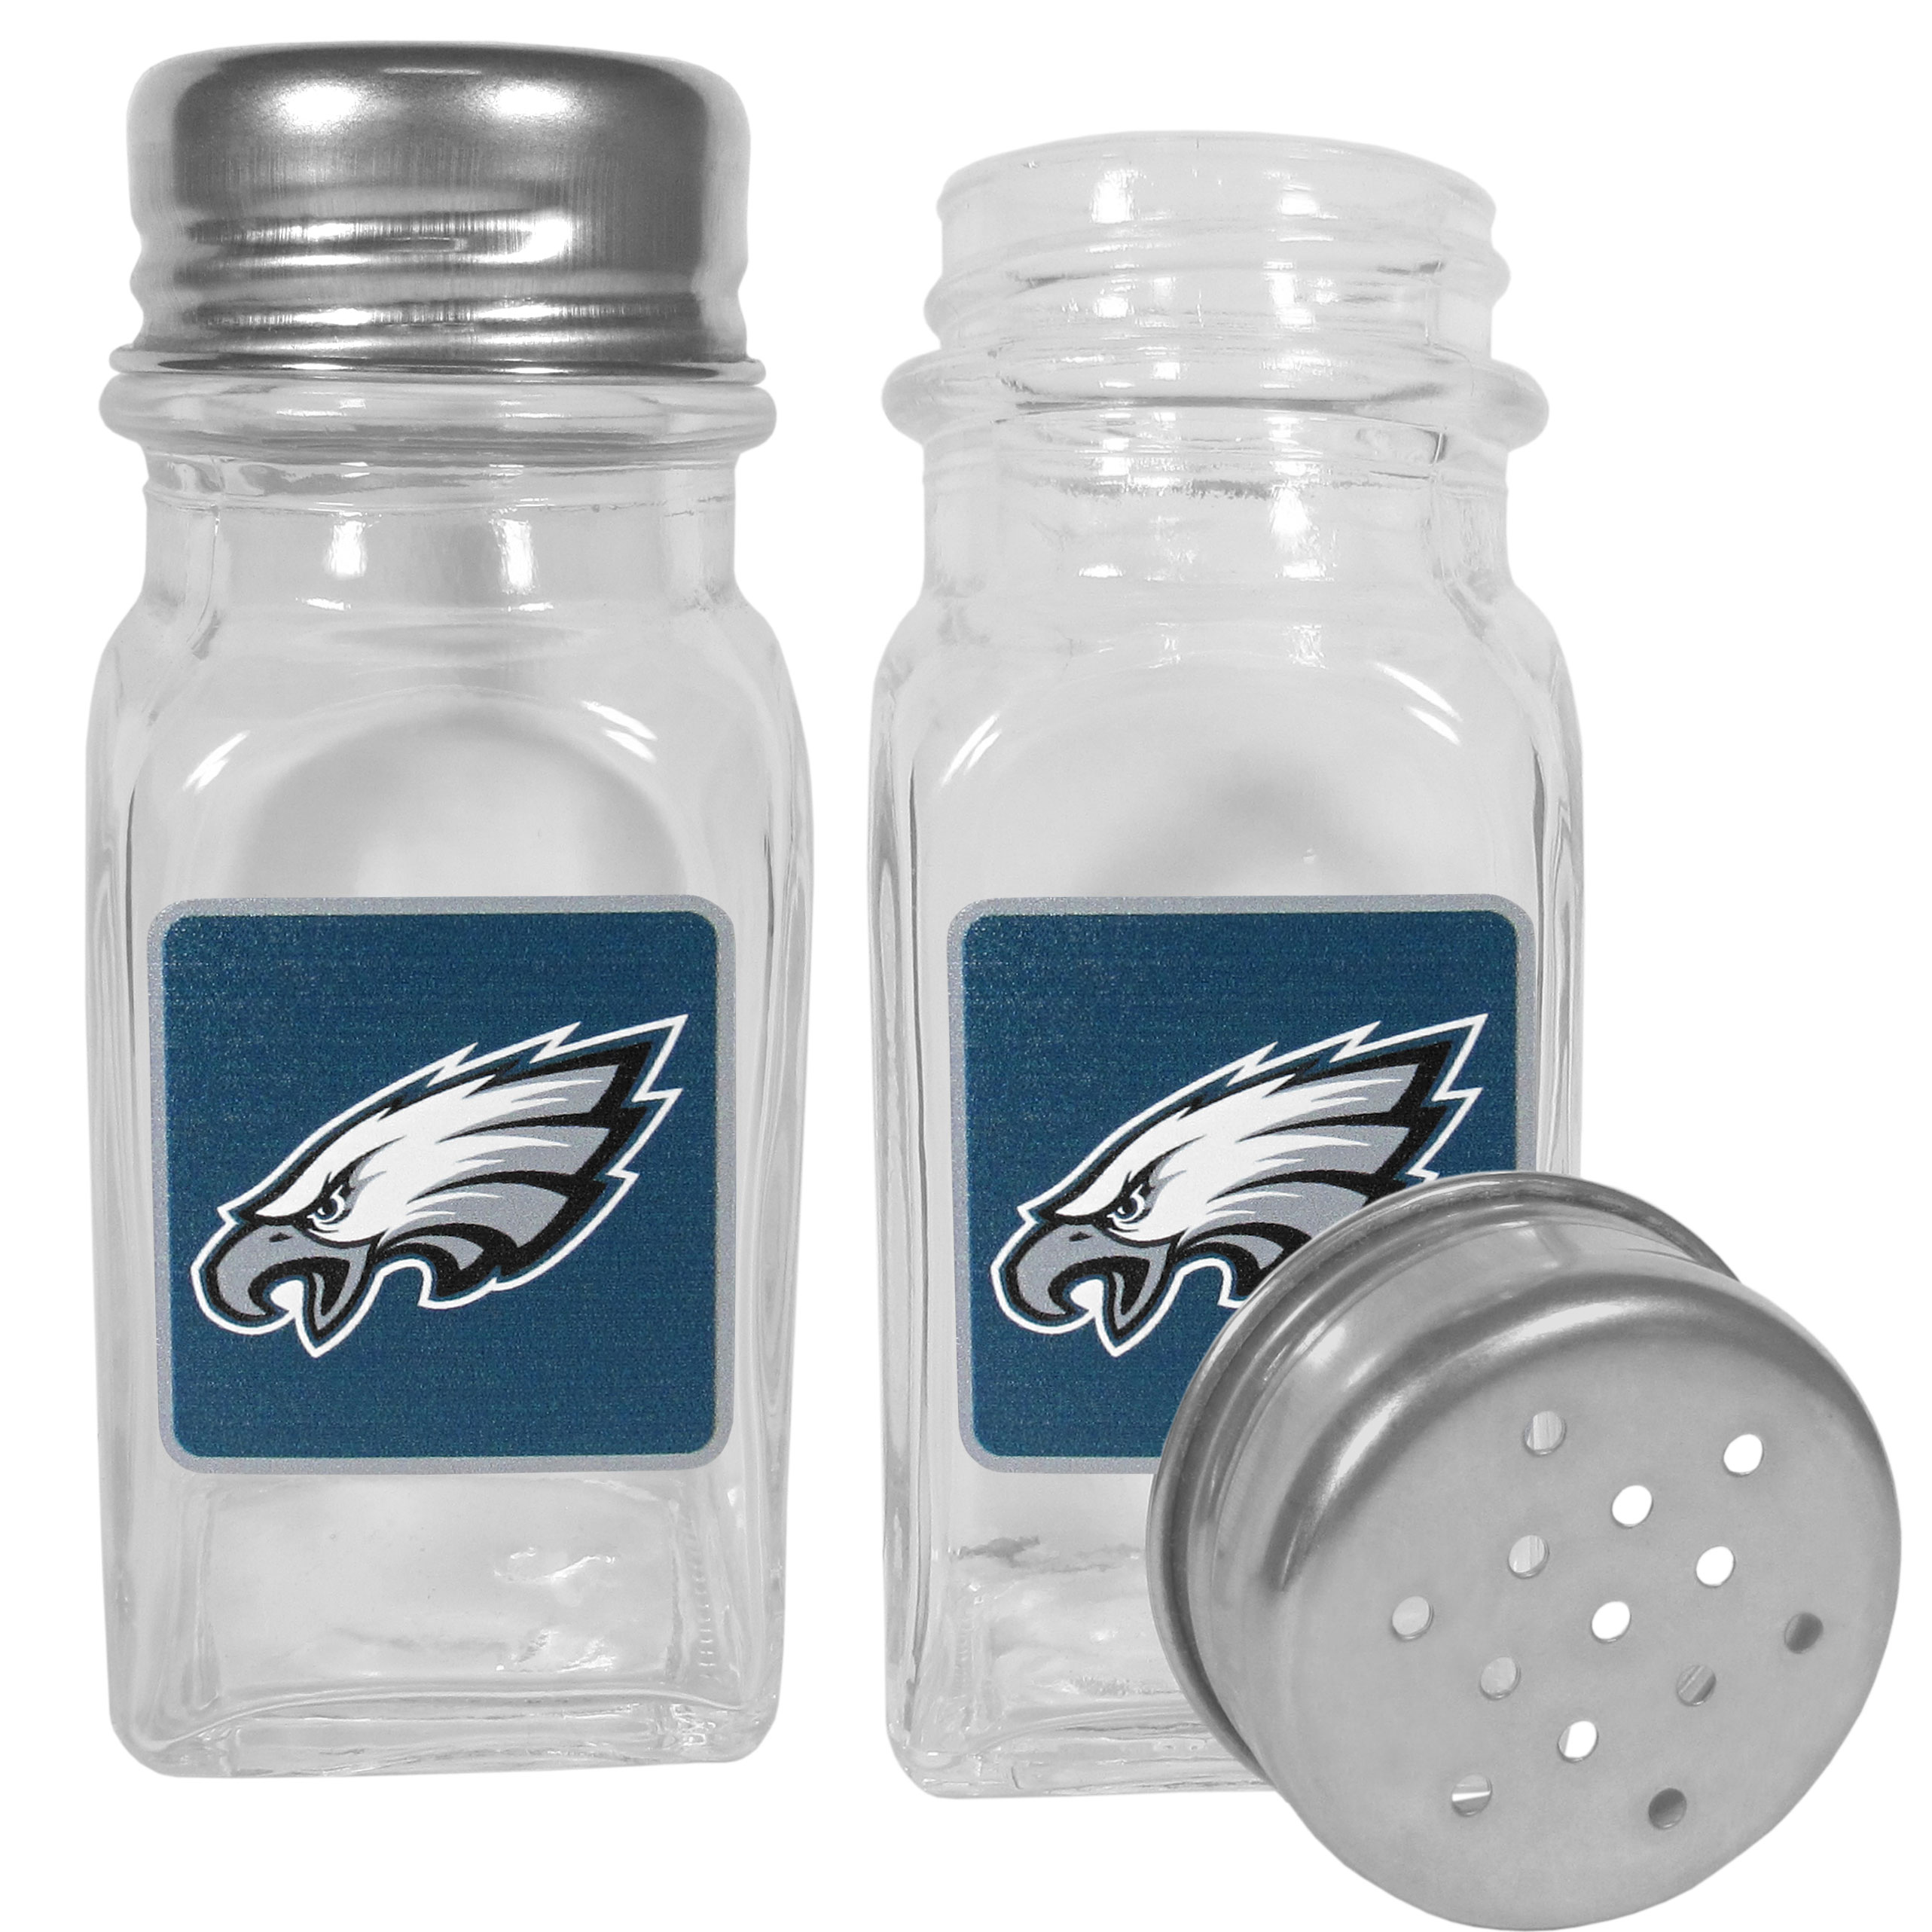 Philadelphia Eagles Graphics Salt and Pepper Shaker - No tailgate party is complete without your Philadelphia Eagles salt & pepper shakers featuring bright team logos. The diner replica salt and pepper shakers are glass with screw top lids. These team shakers are a great grill accessory whether you are barbecuing on the patio, picnicing or having a game day party.